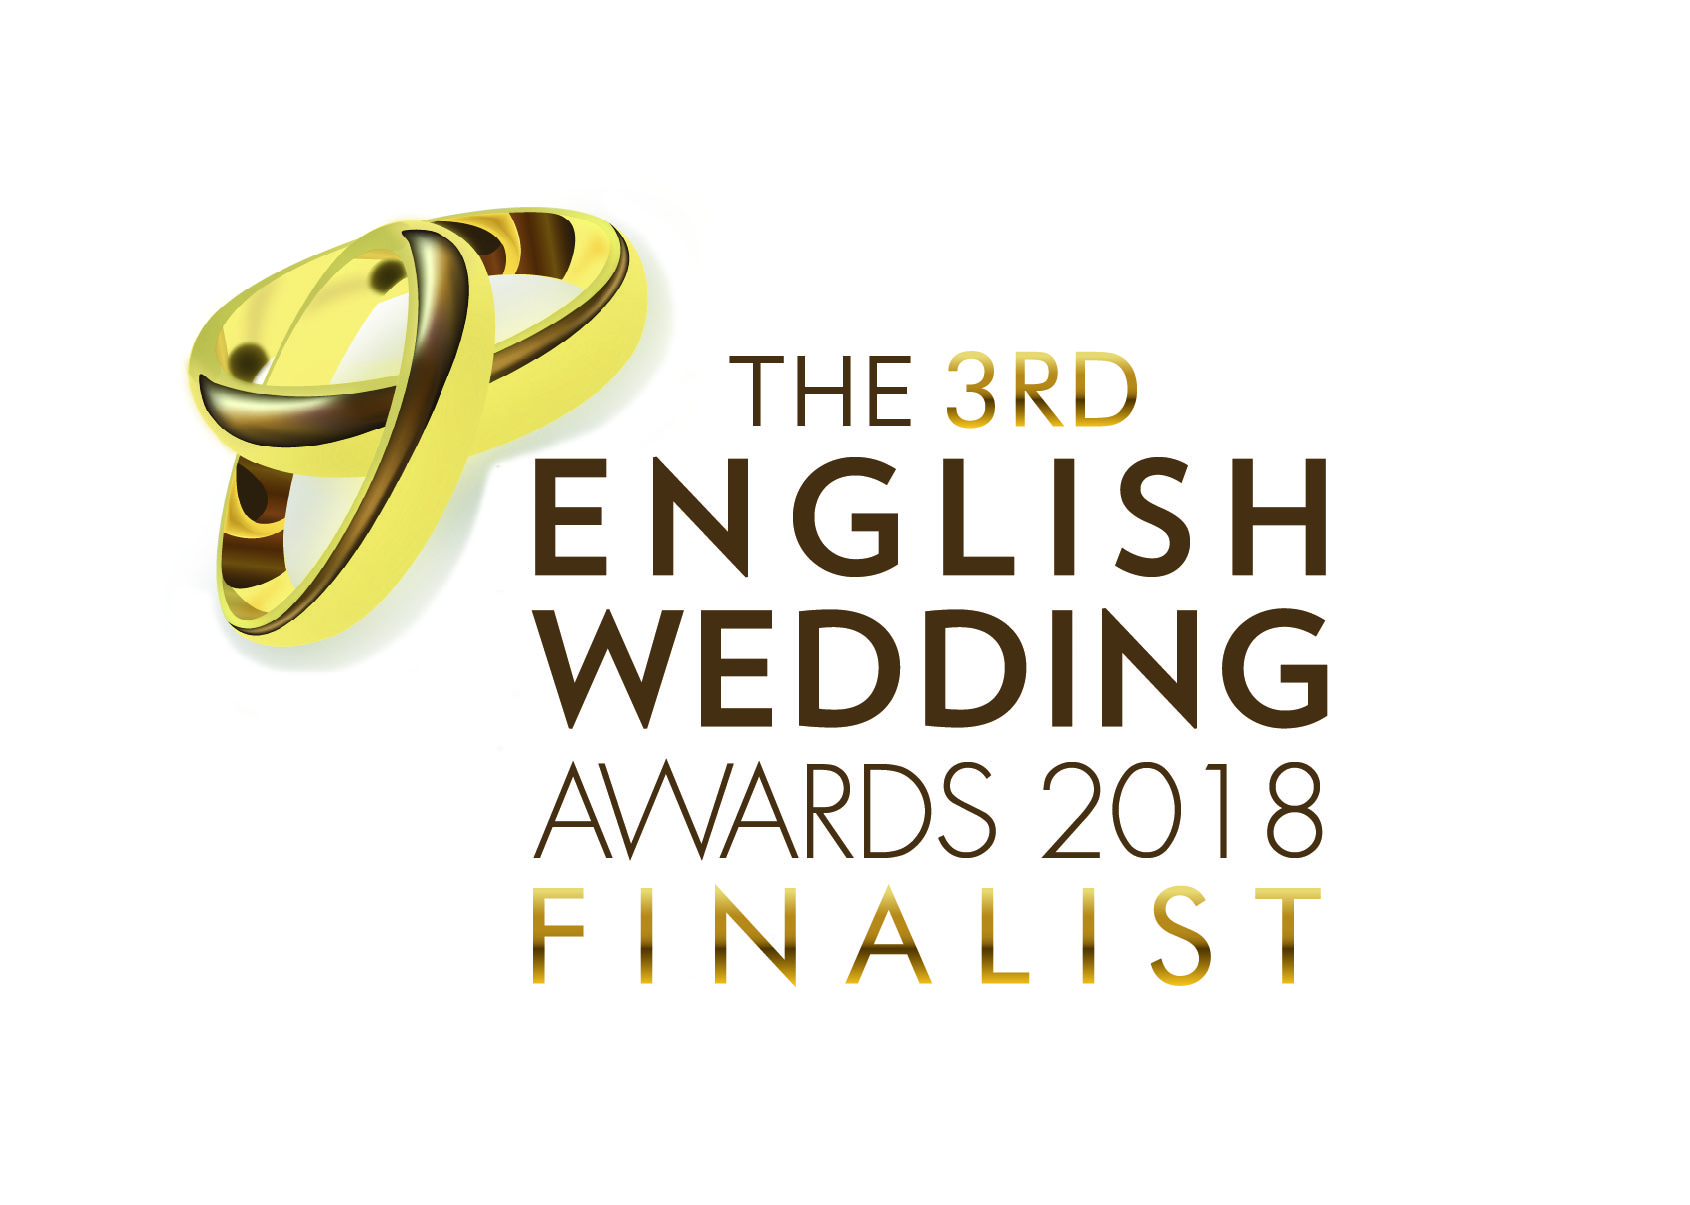 Finalists in the English Wedding Awards